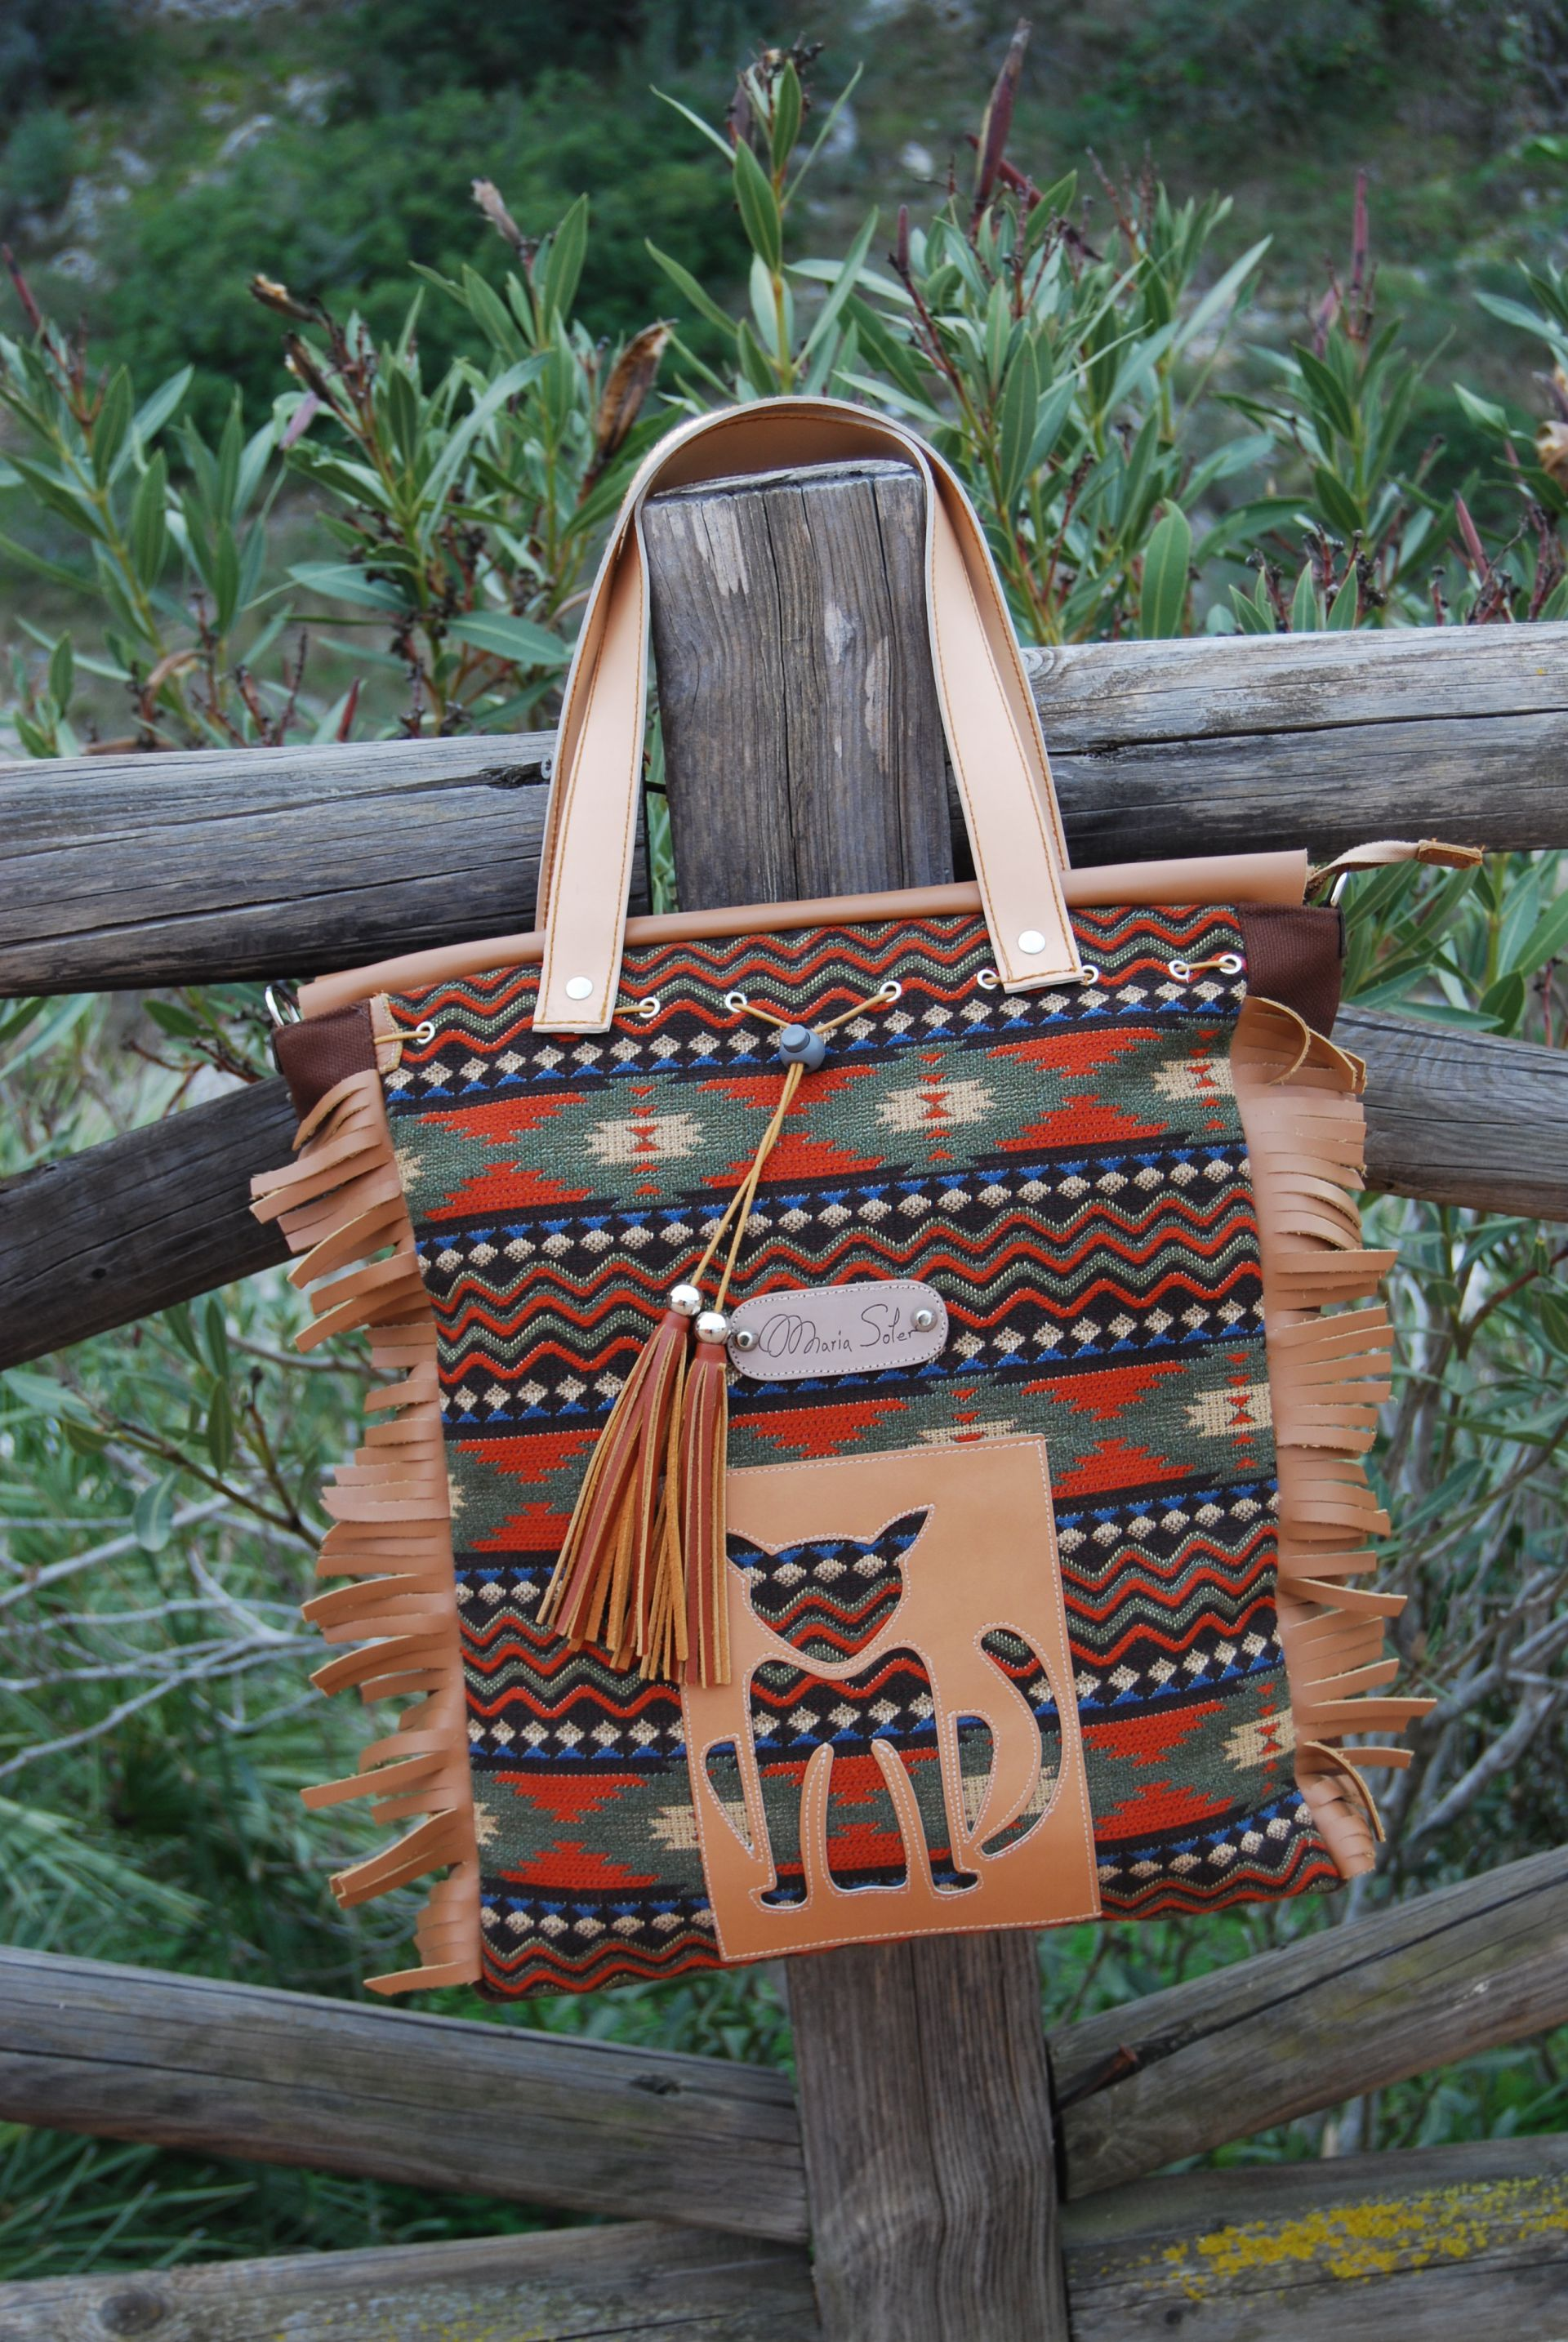 Picture CHEROKE bag, by MARIA SOLER